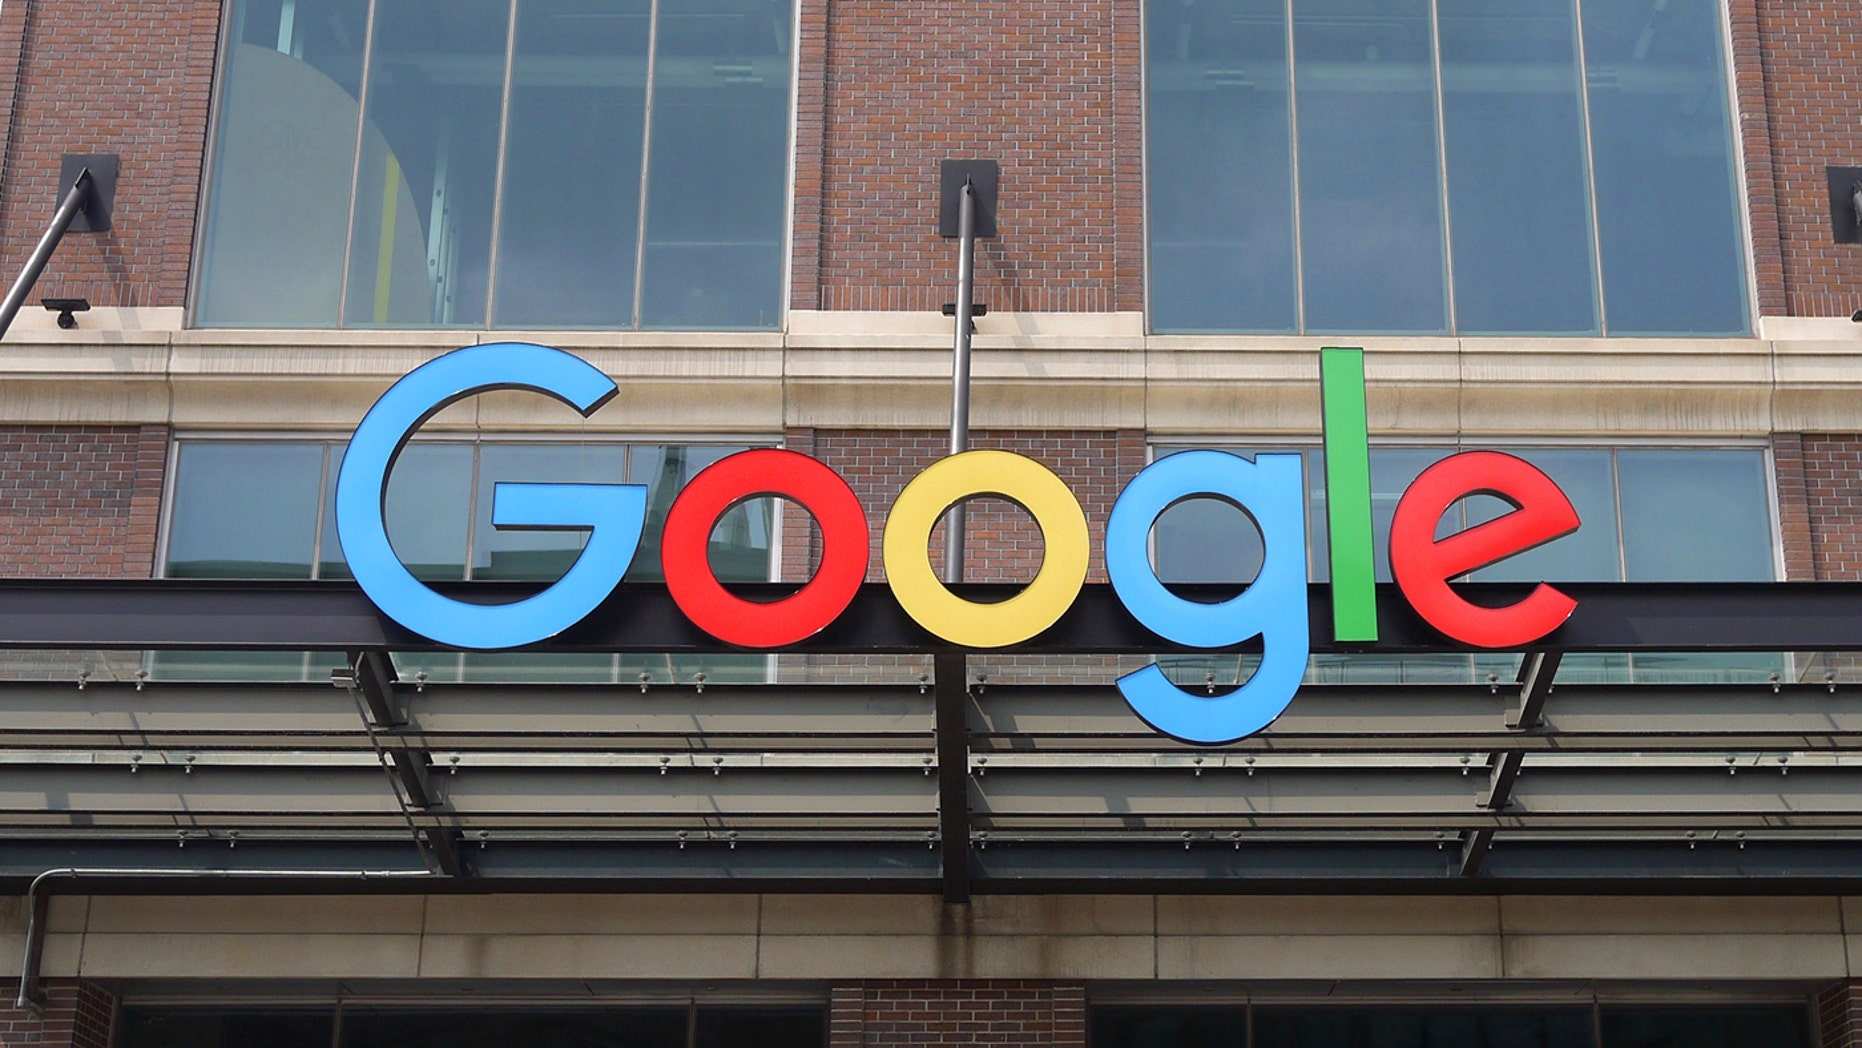 Google's proclamation on Wednesday of a vital investment in U.S. information centers and offices includes an enlargement of a Chicago location, above.